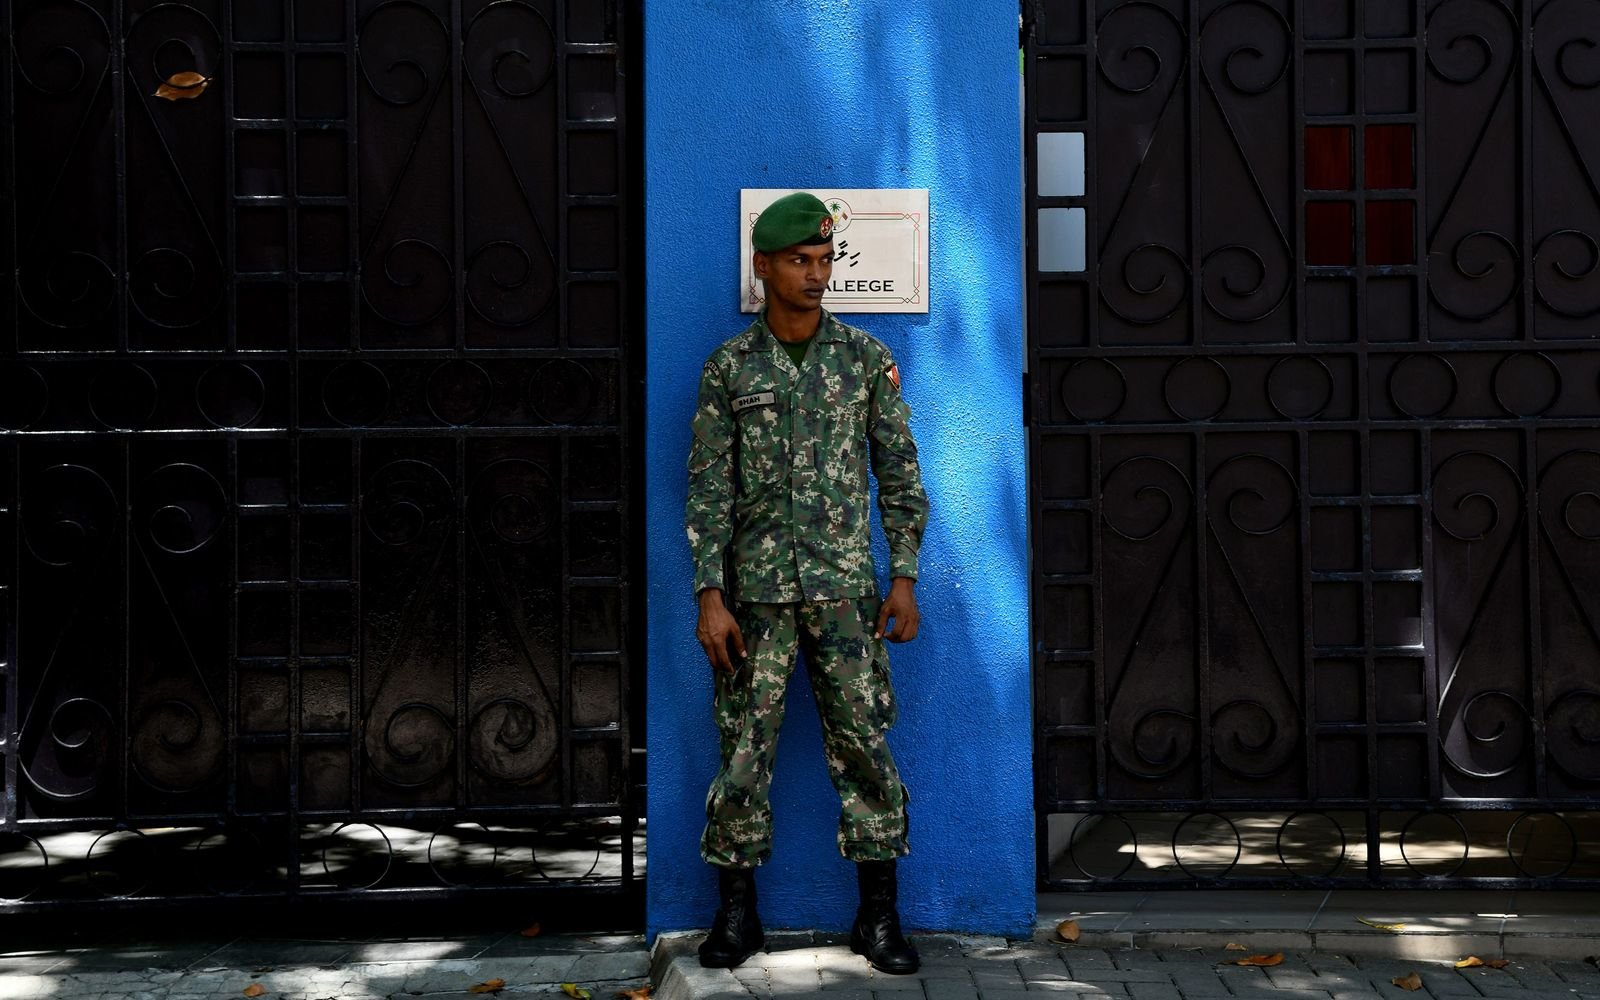 Maldives: Political crisis escalates following widespread protests